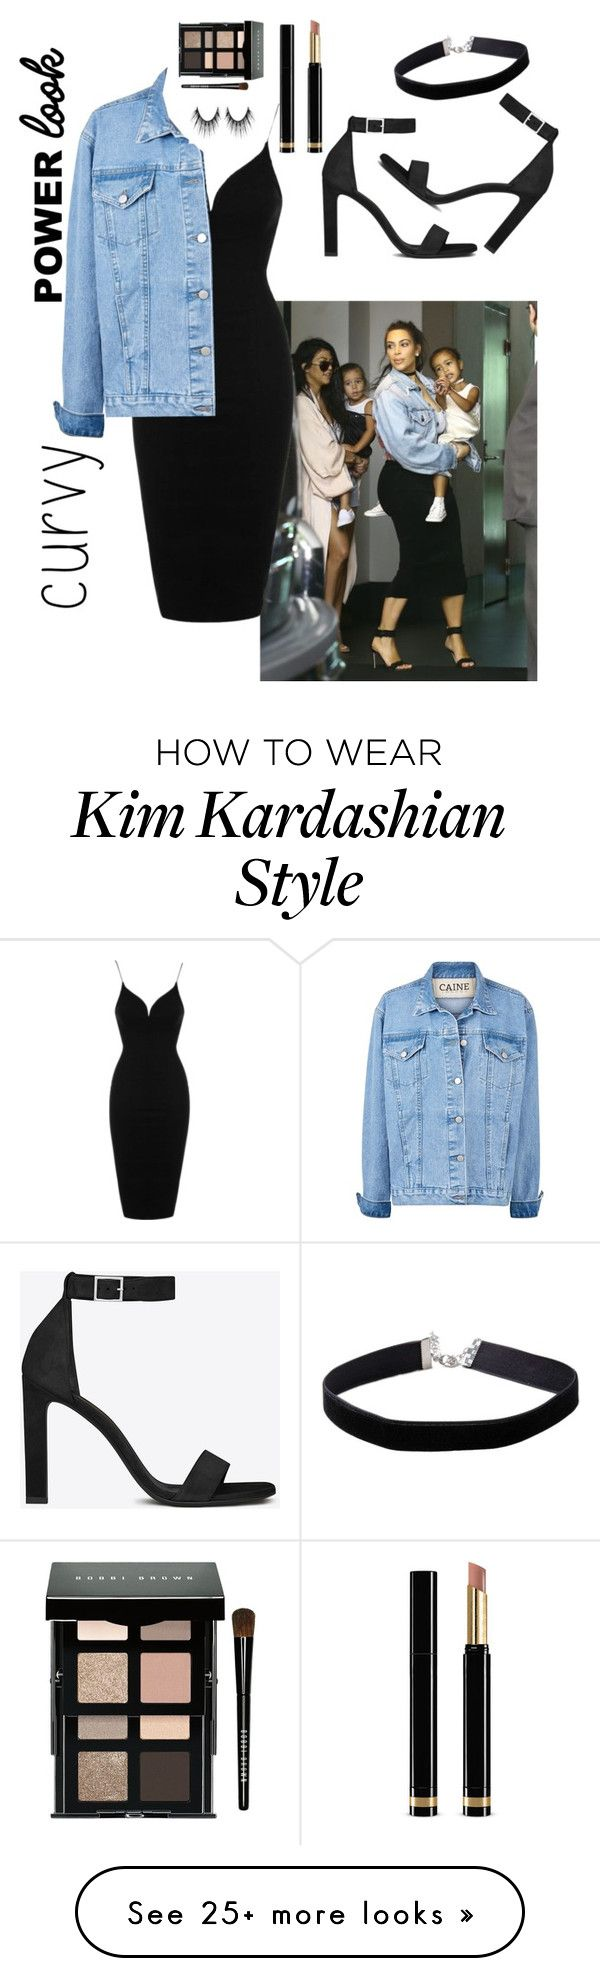 1000 Images About Kim Kardashian Style On Pinterest